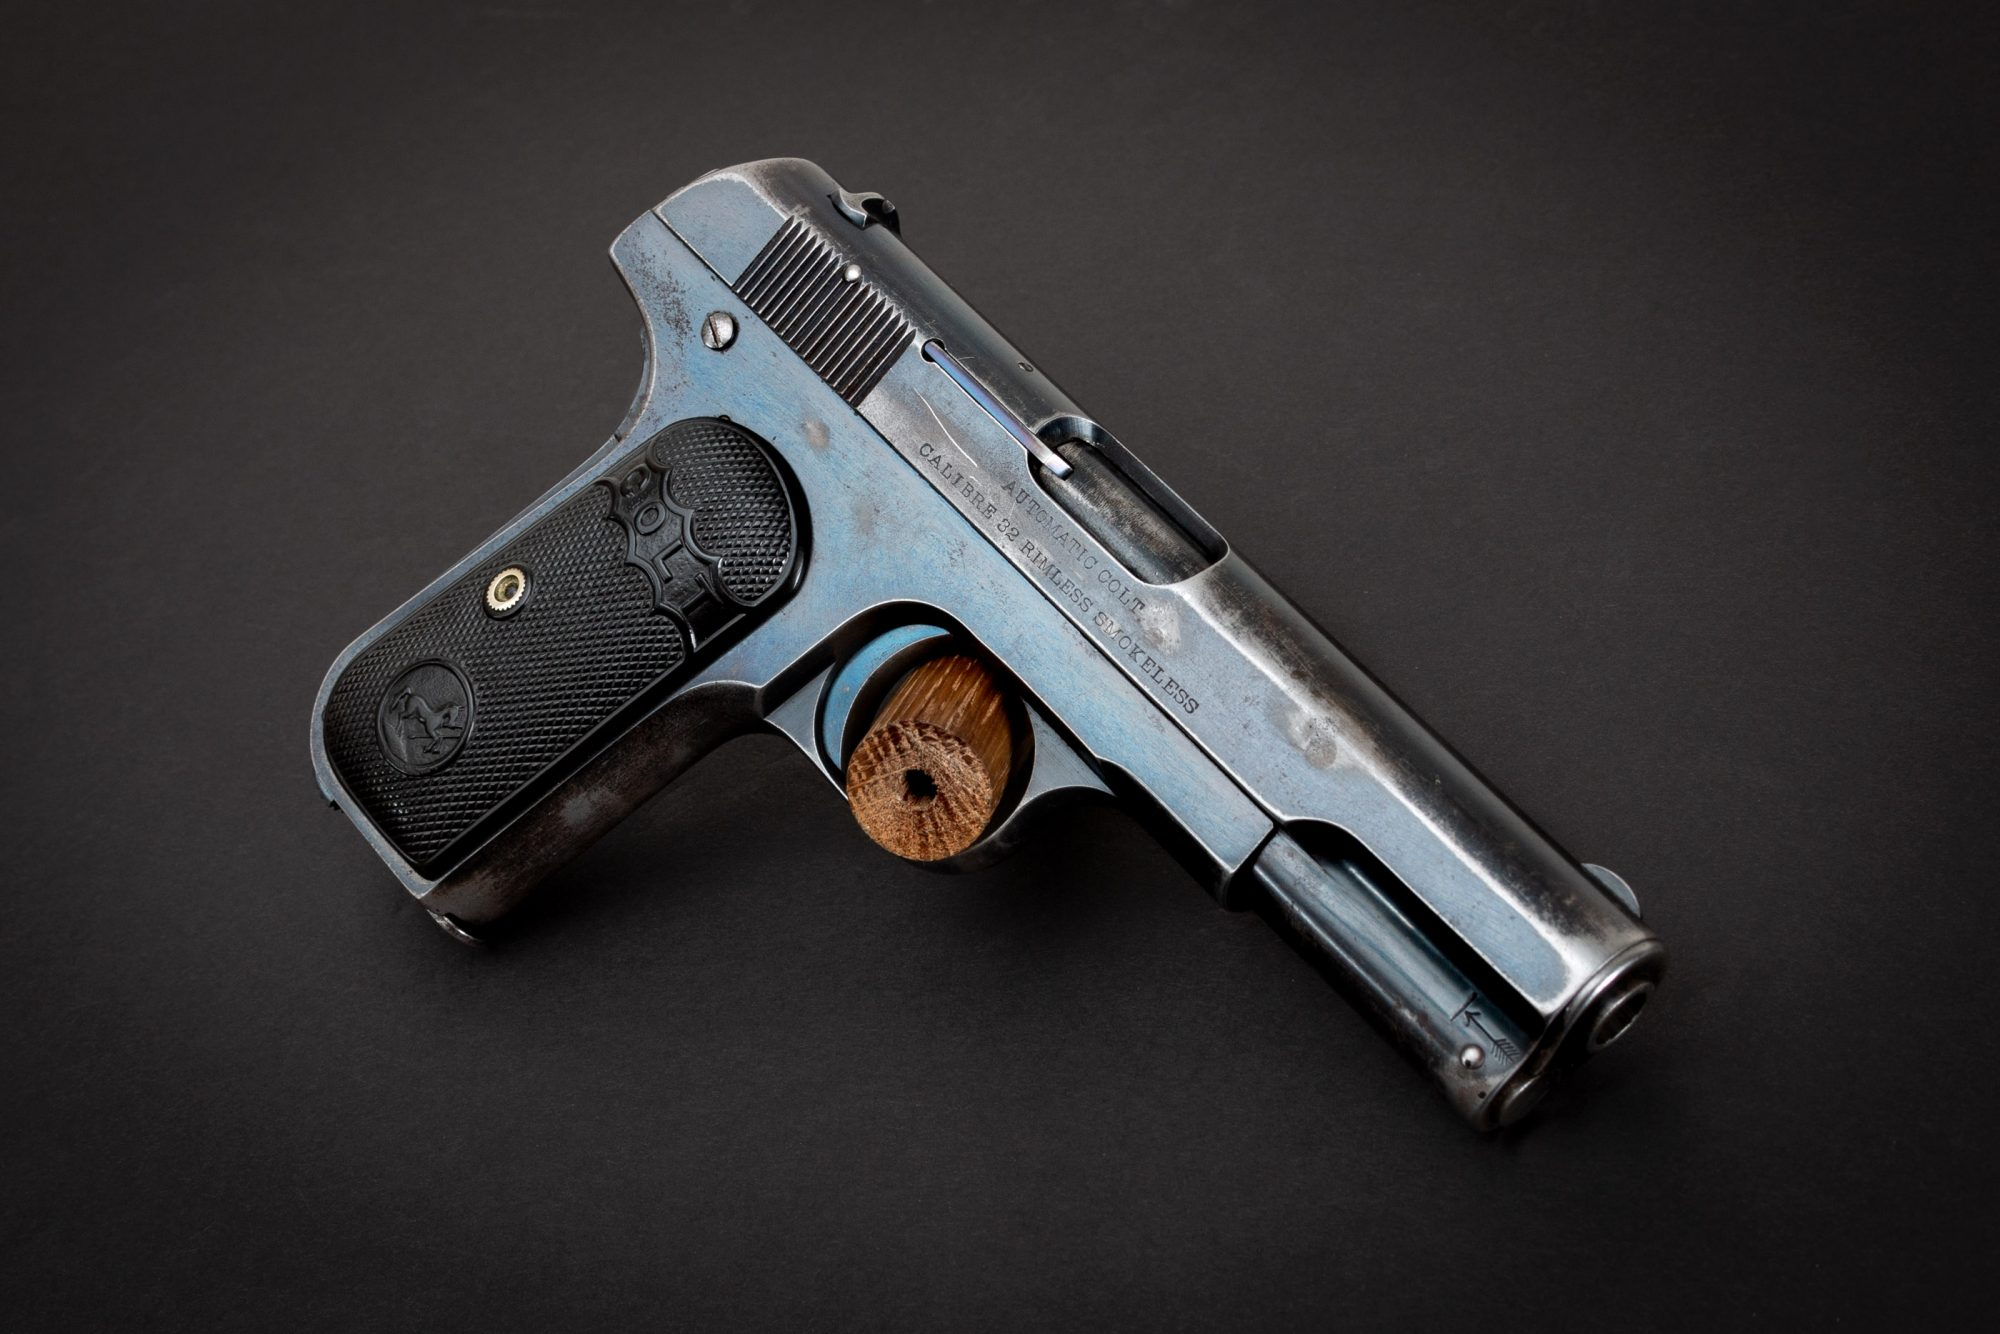 Photo of a pre-owned Colt Model 1903 in .32 Auto, for sale as-is by Turnbull Restoration in Bloomfield, NY